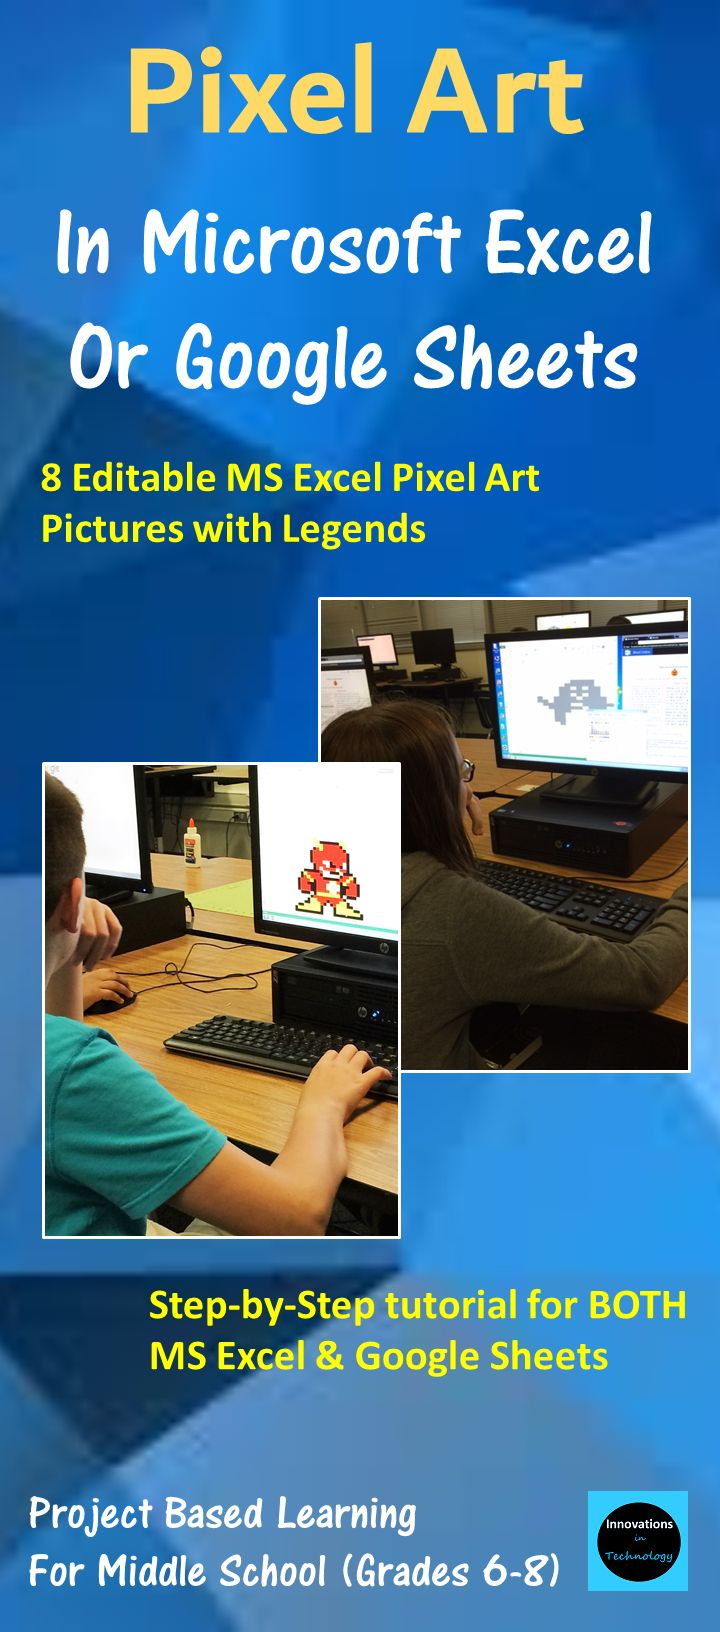 Need a fun way to introduce Microsoft Excel or Google Sheets to upper elementary or middle school students? This great lesson lets students learn the basics of Microsoft Excel (or Google Sheets) as they create pixel art using the program. First, they'll create a quick pixel art from a given example and then they'll create their own! These are also fun lessons to use if you just need something for a one day lesson. Perfect for the beginning of the school year too.